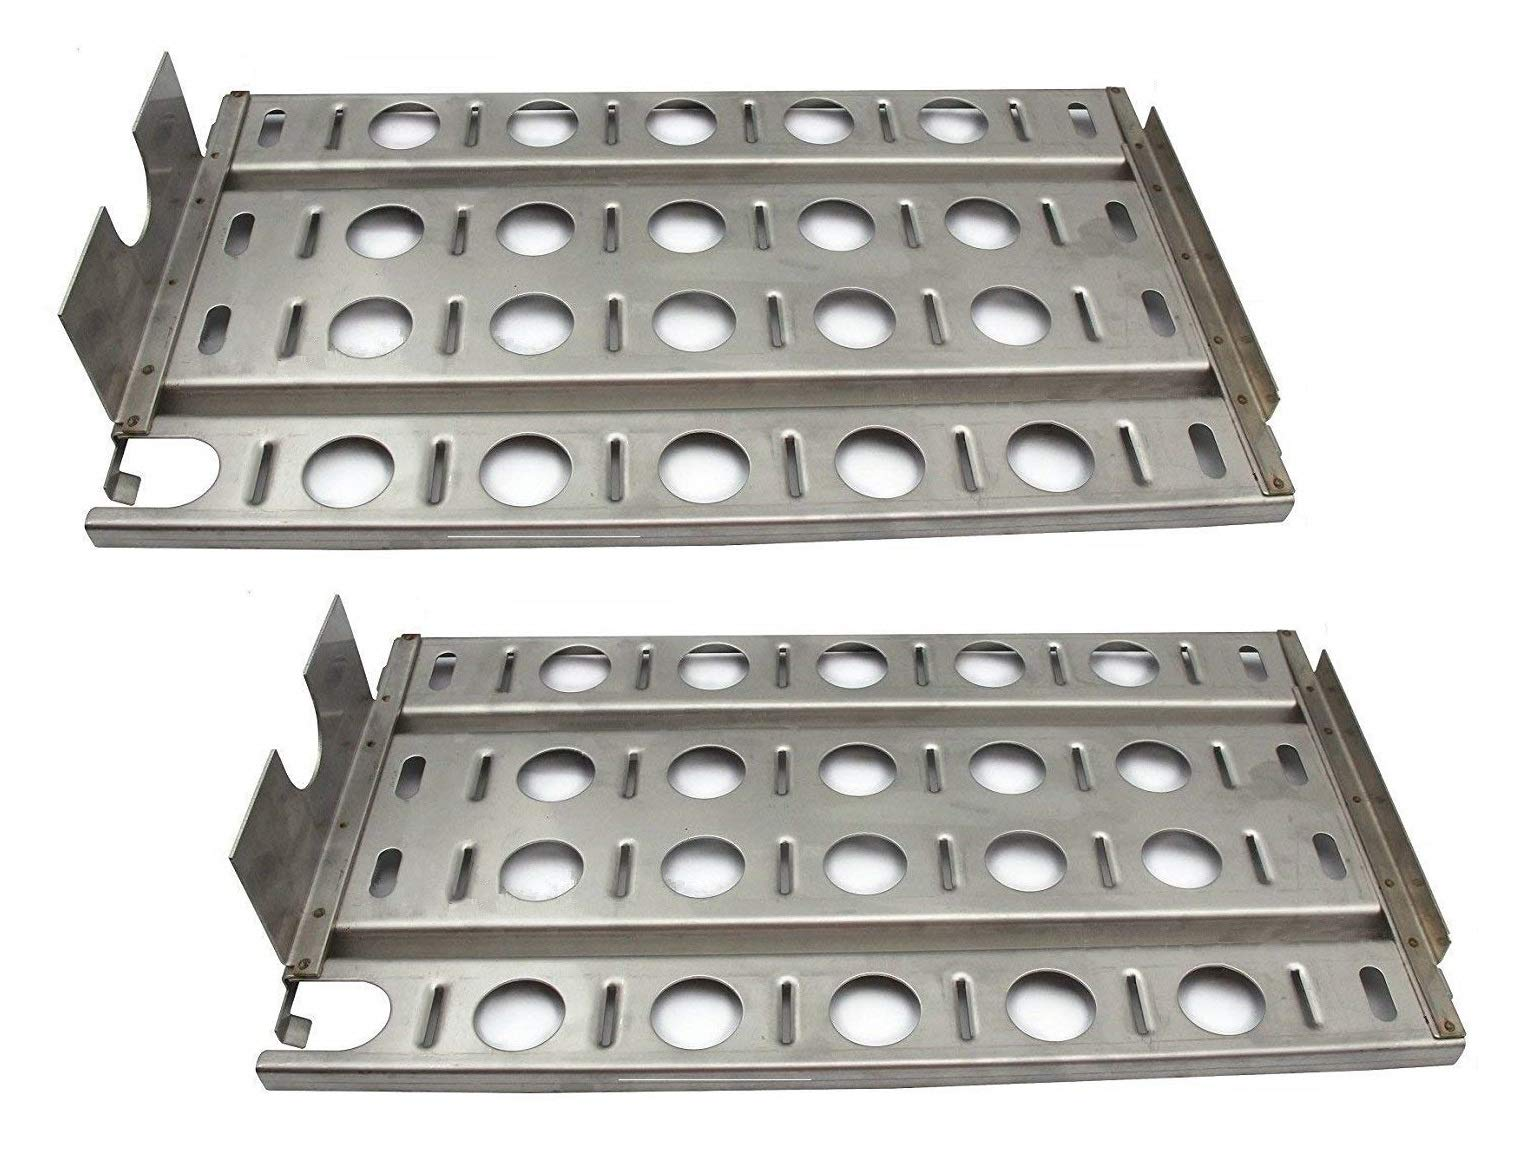 Hongso SPB571-2 Stainless Steel BBQ Gas Grill Heat Plate, Heat Shield for Lynx L27 Models (16 7/8'' x 9 1/2'')